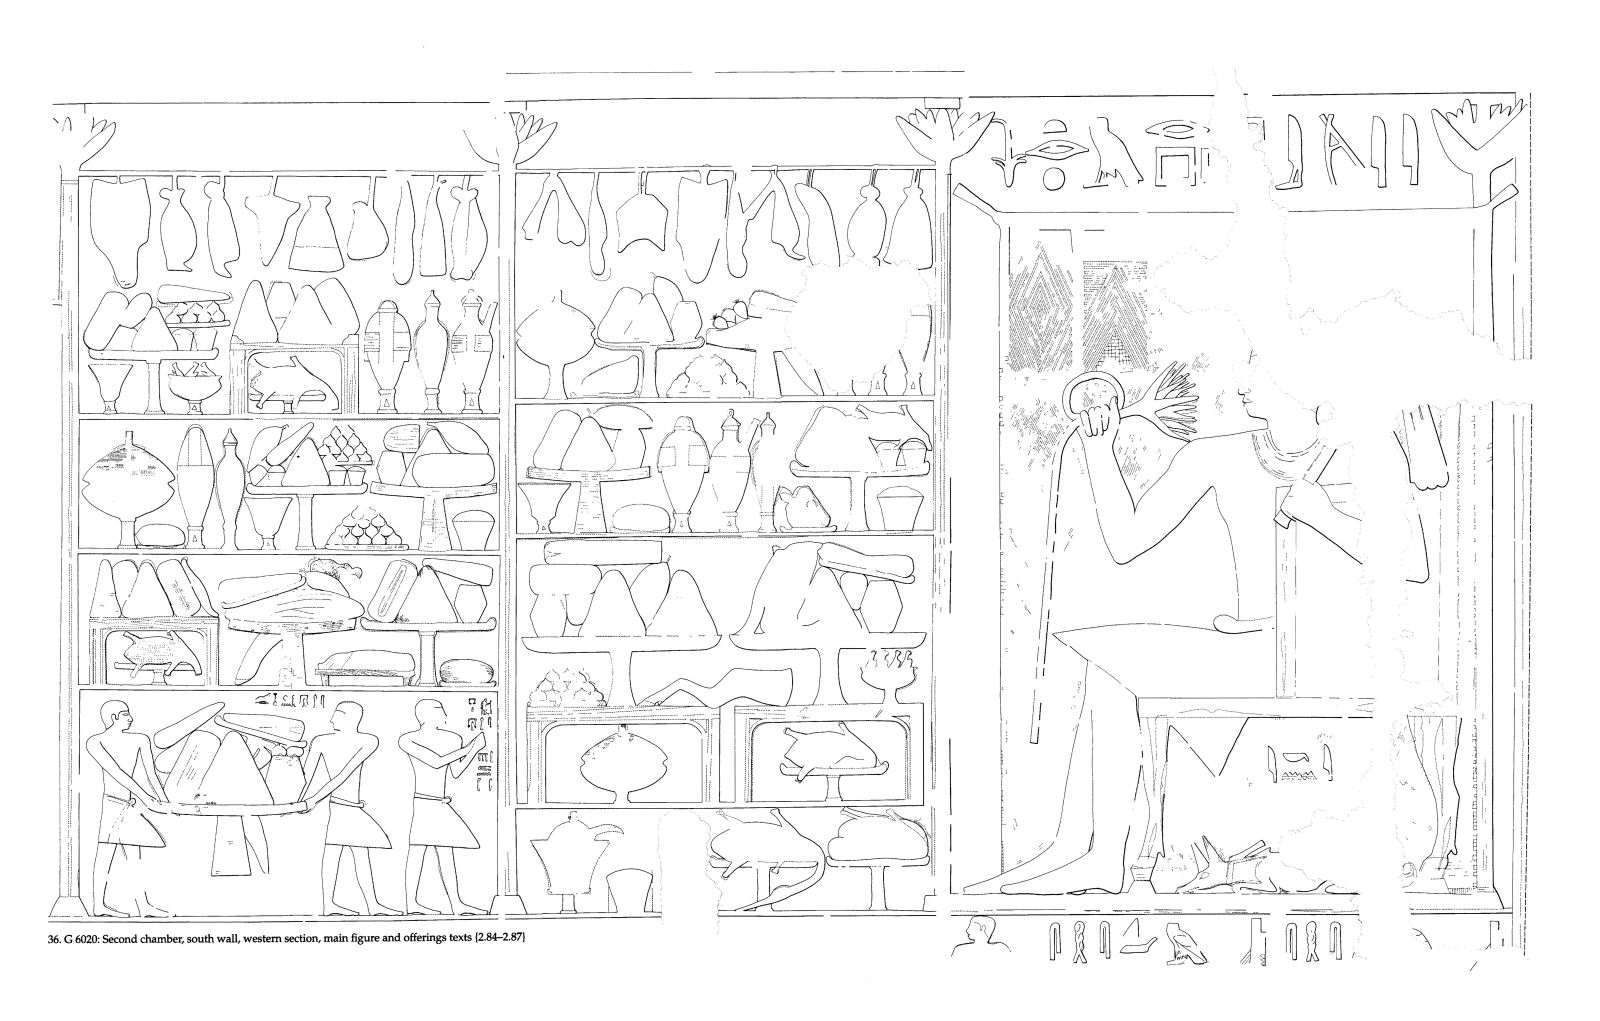 Drawings: G 6020: relief from second chamber, S wall, W section